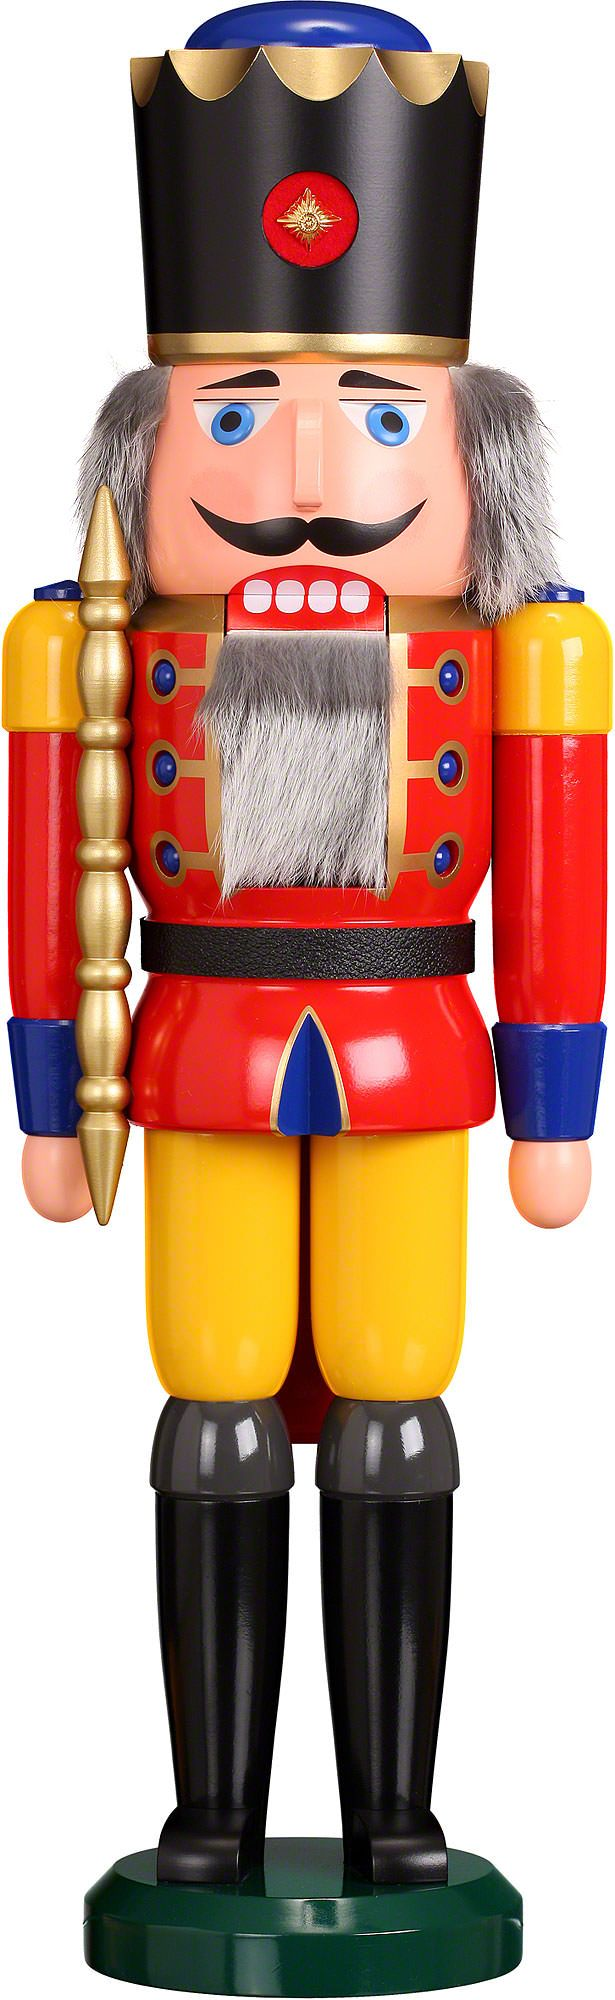 german nutcracker - Google Search